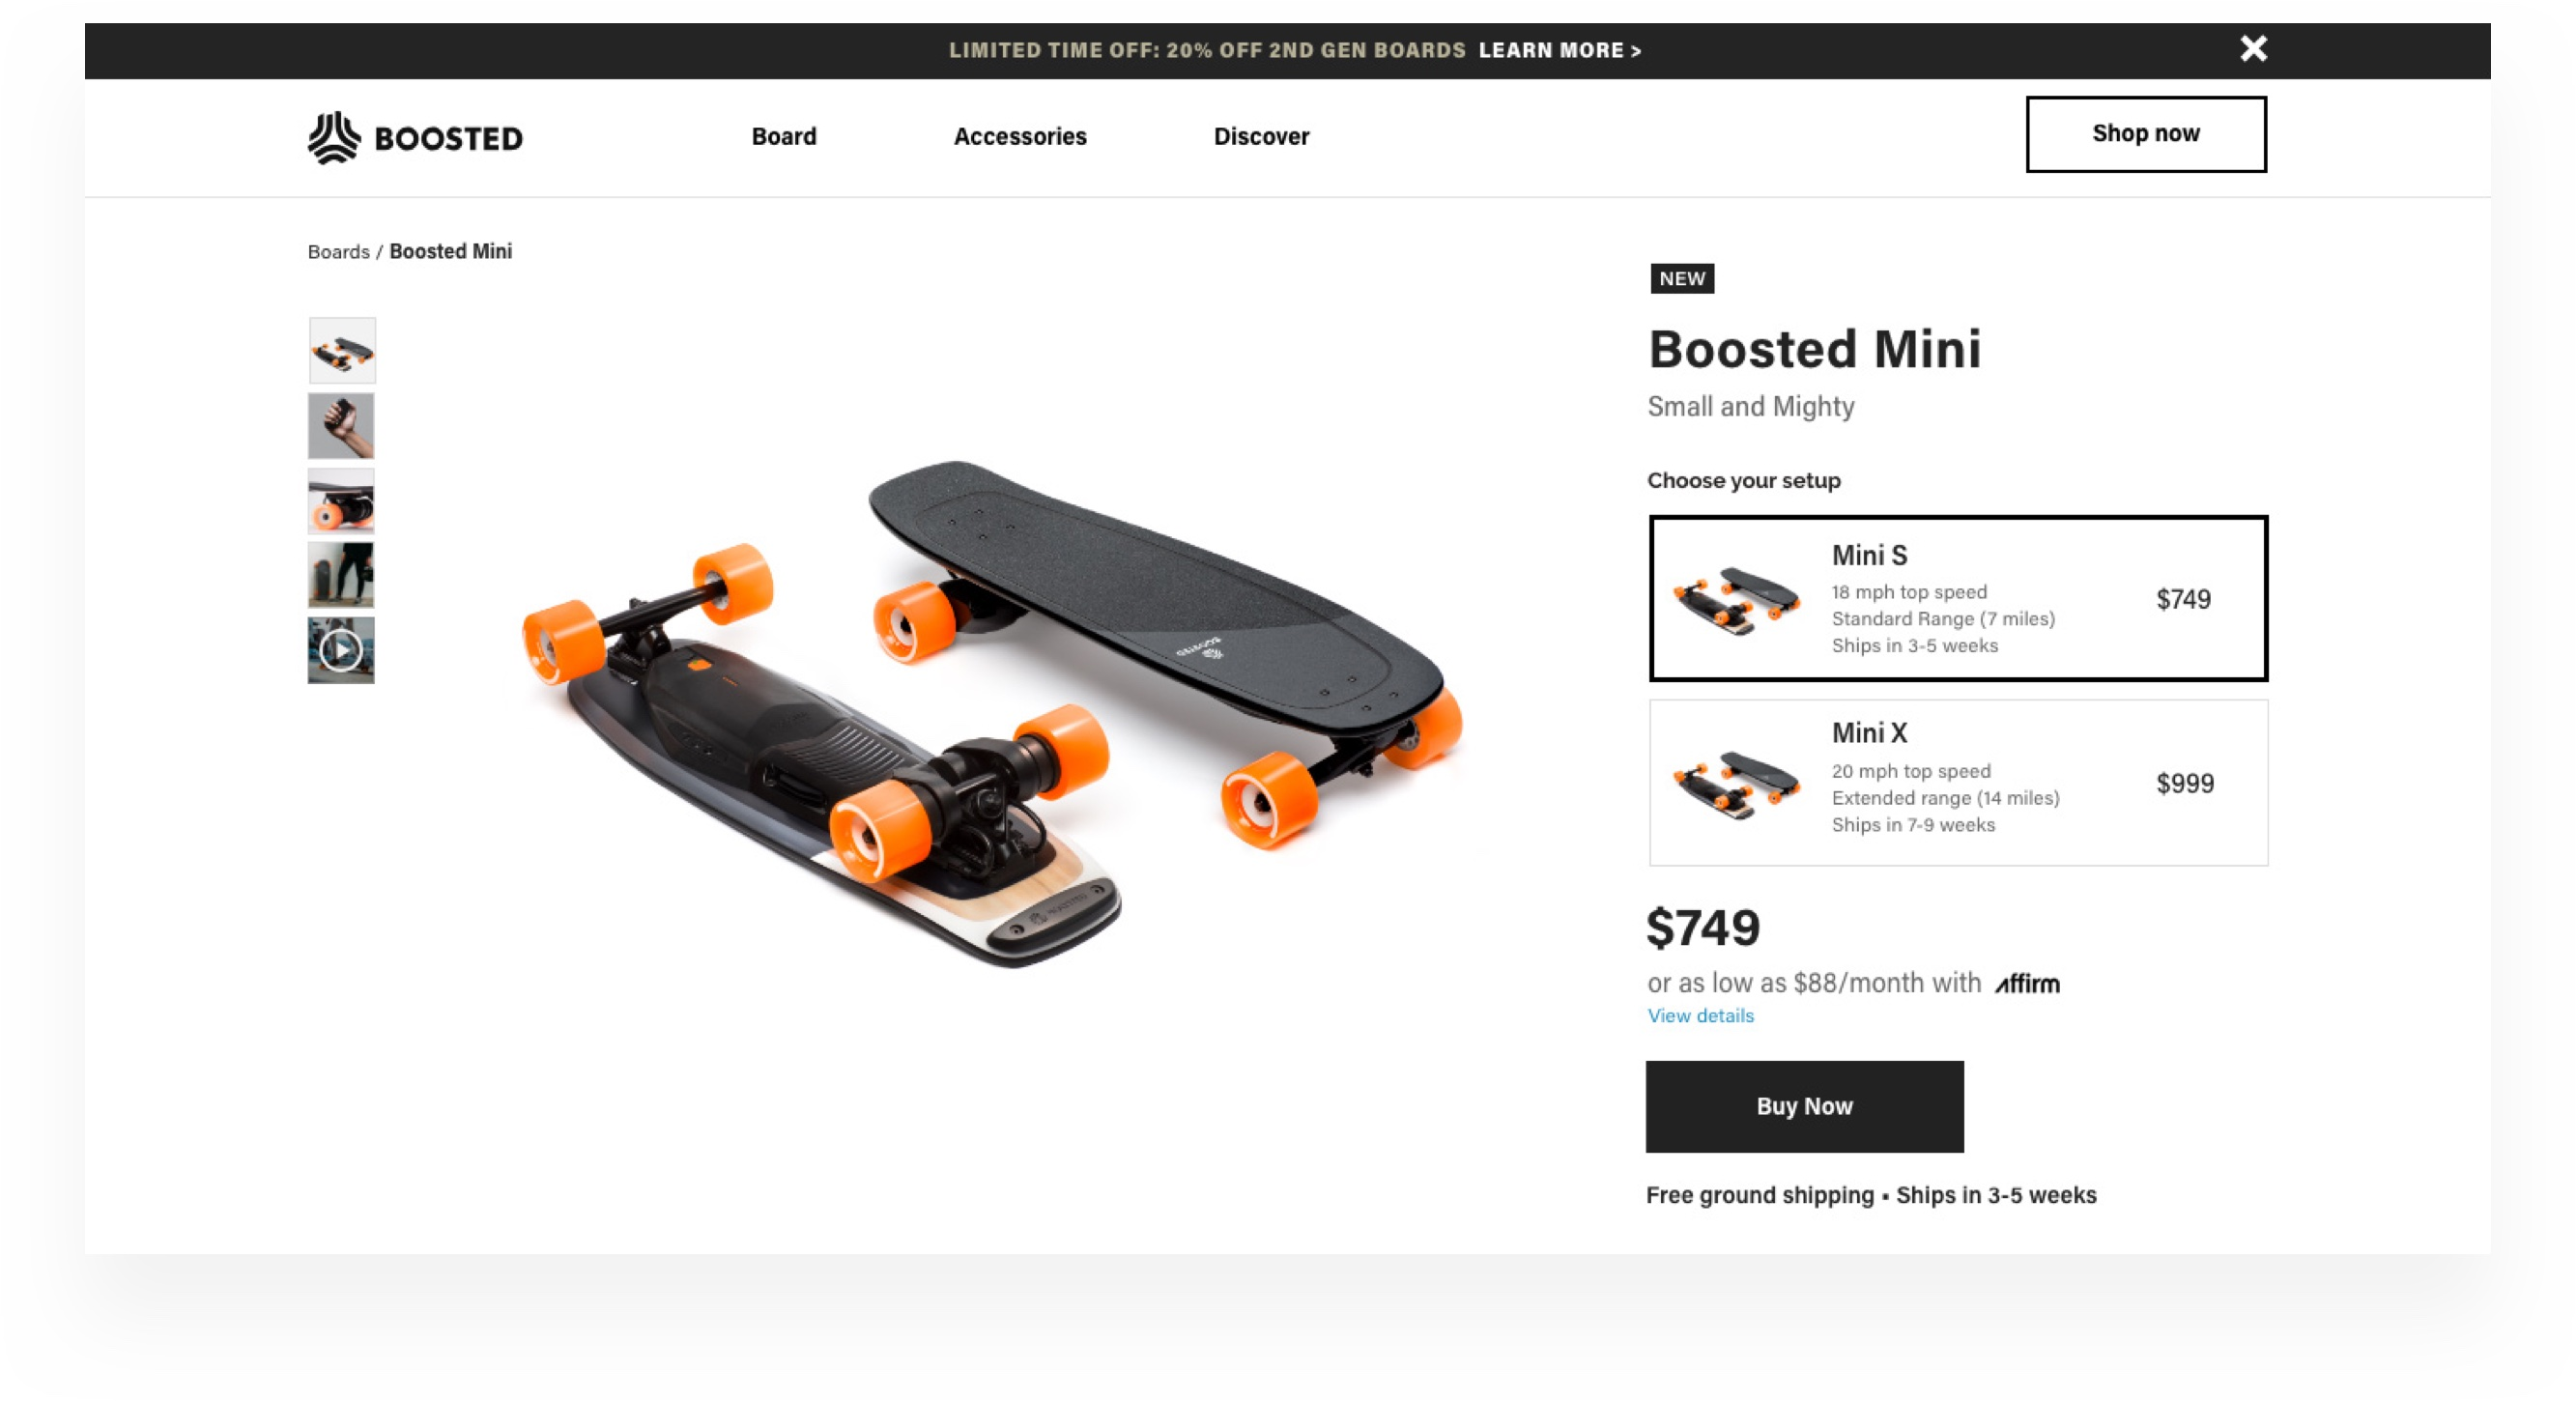 Boosted Boards Gen 3 Launch - Design Case Study